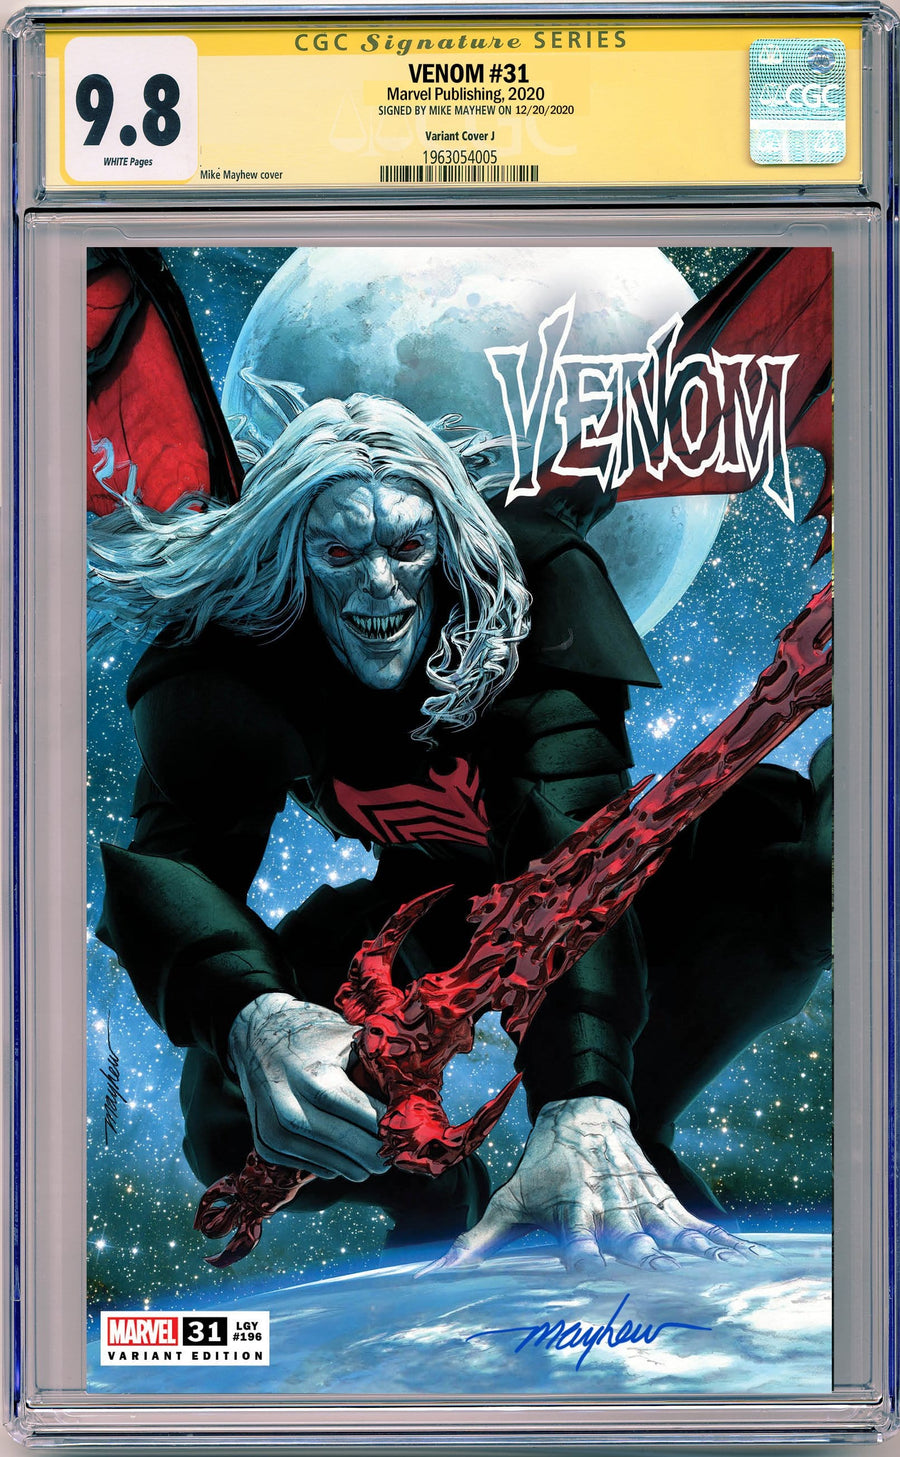 VENOM #31 MIKE MAYHEW STUDIO EXCLUSIVE VARIANTS CGC SIG SERIES 9.6 AND ABOVE OPTIONS